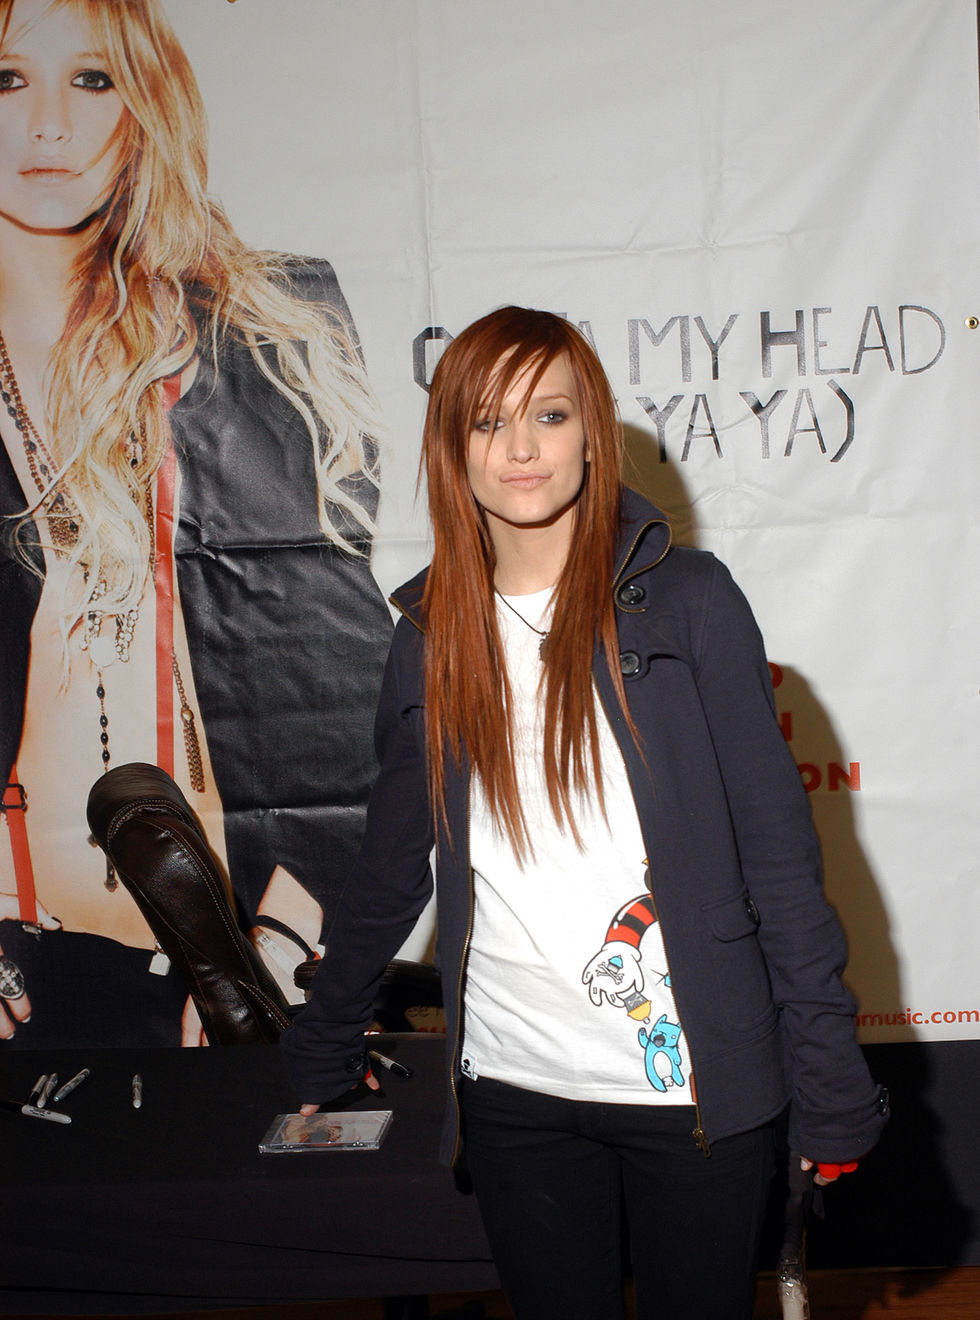 ashlee-simpson-promotes-her-new-cd-in-bensalem-01